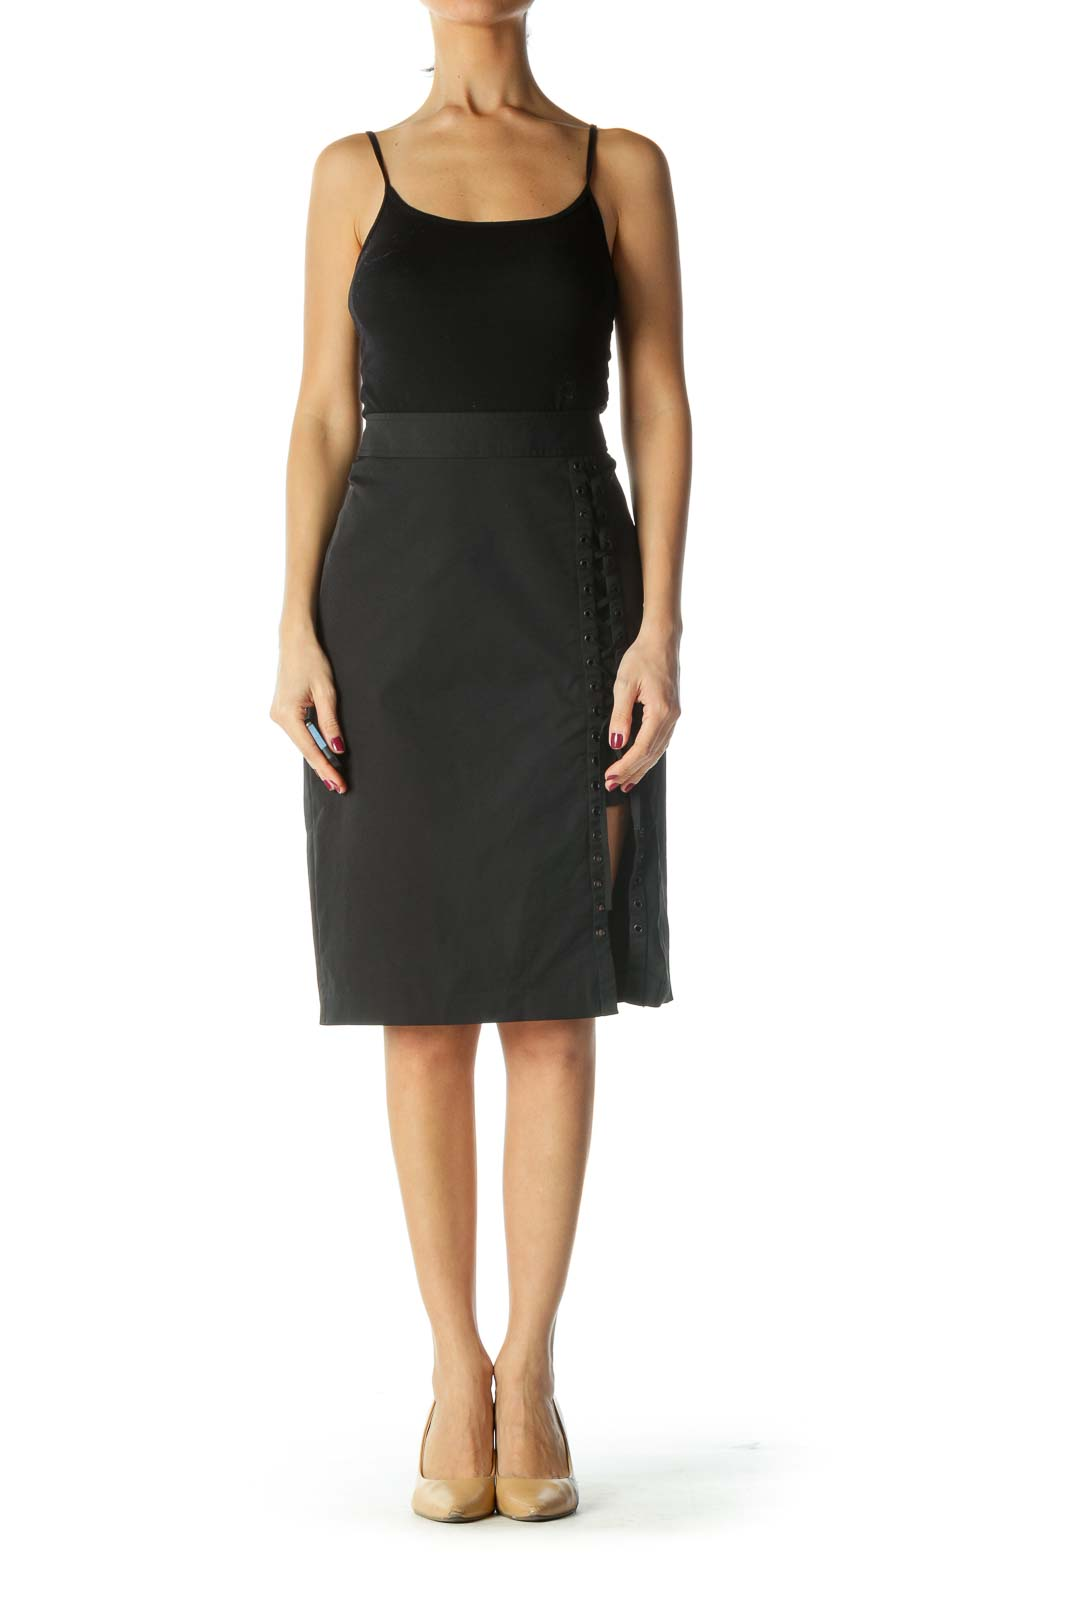 Black Corset Pencil Skirt